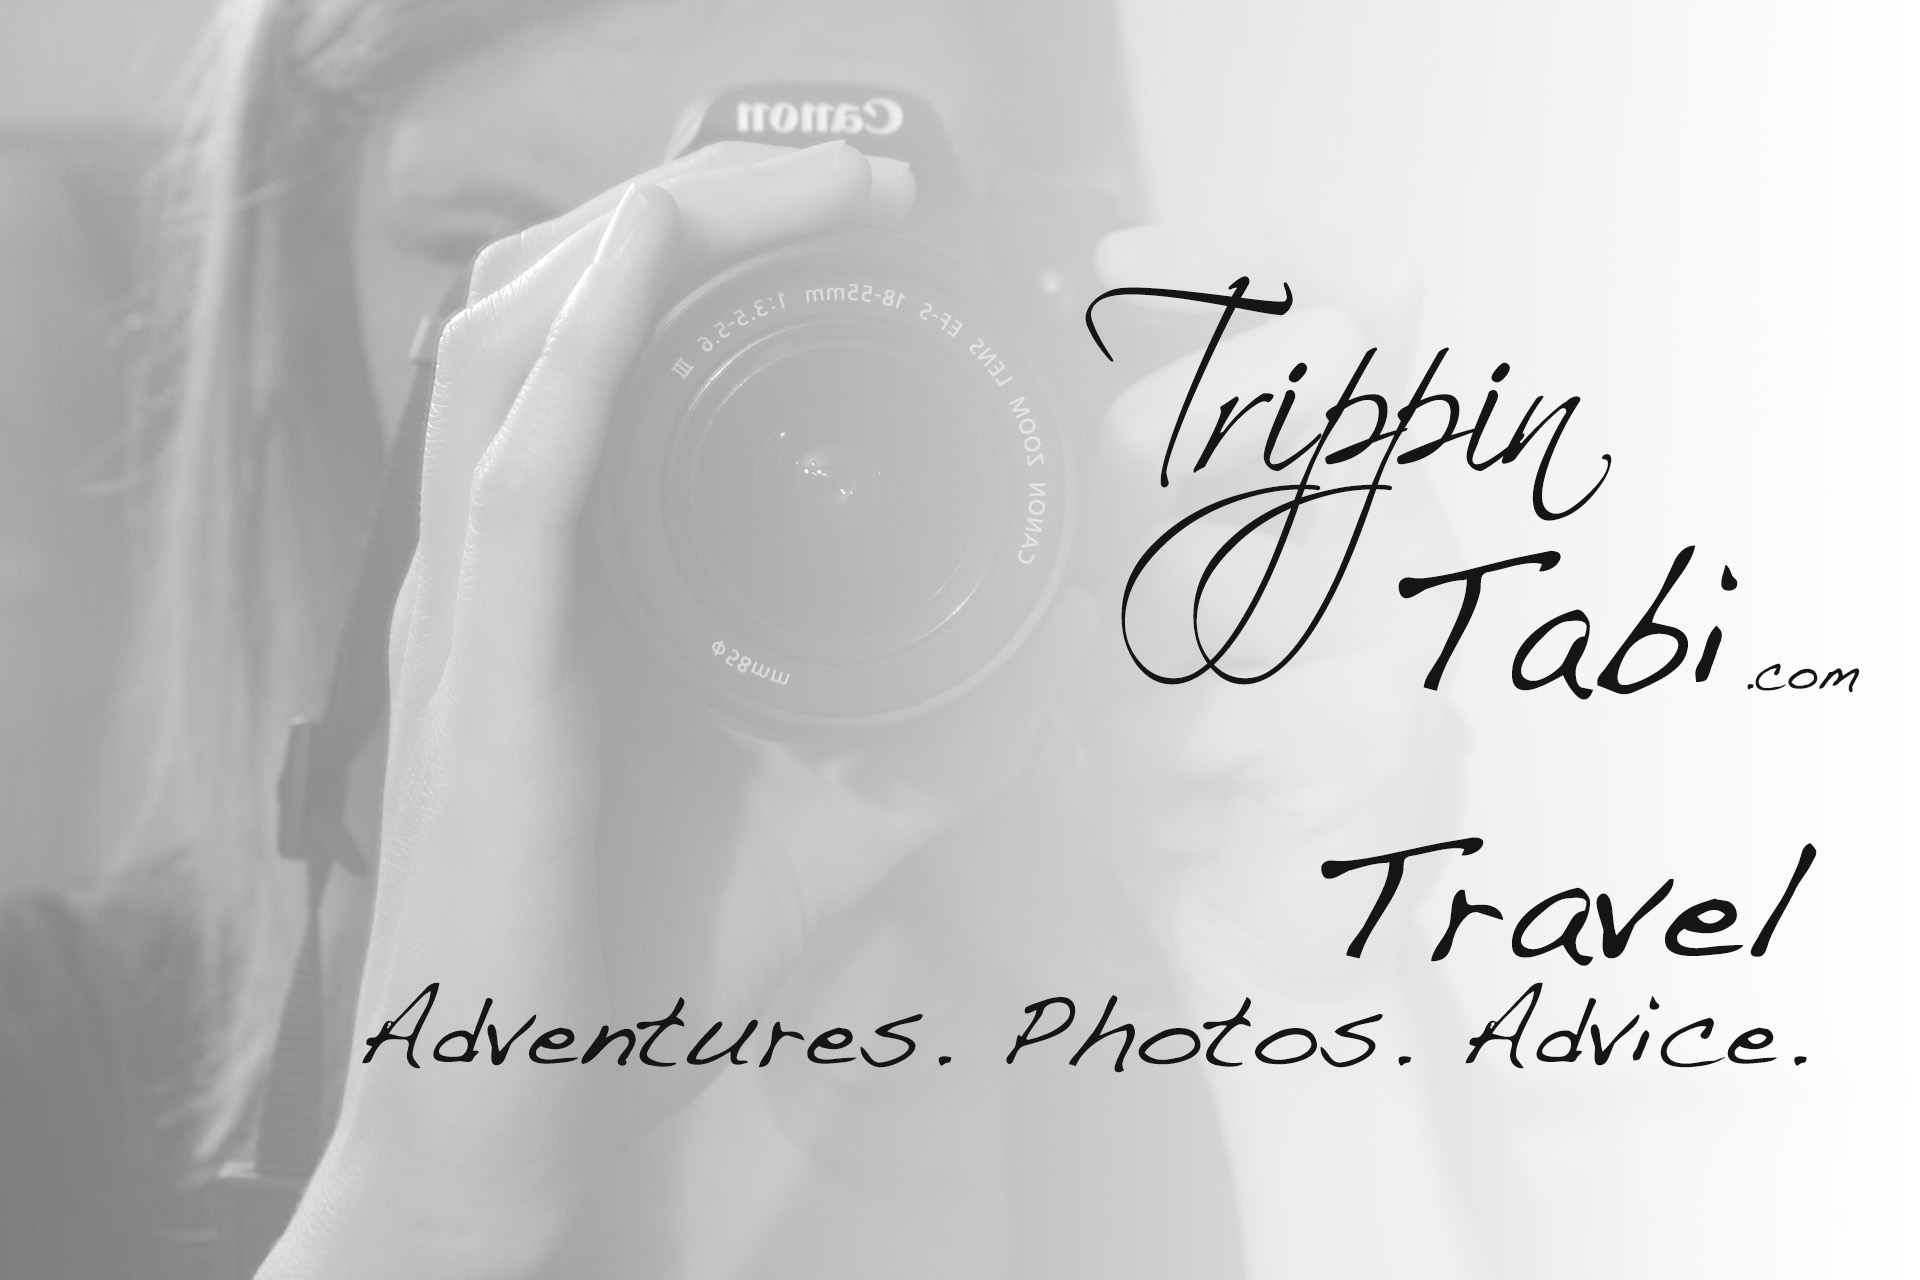 Nashville Travel Photographer & Solo Female Travel Blog by Tabitha